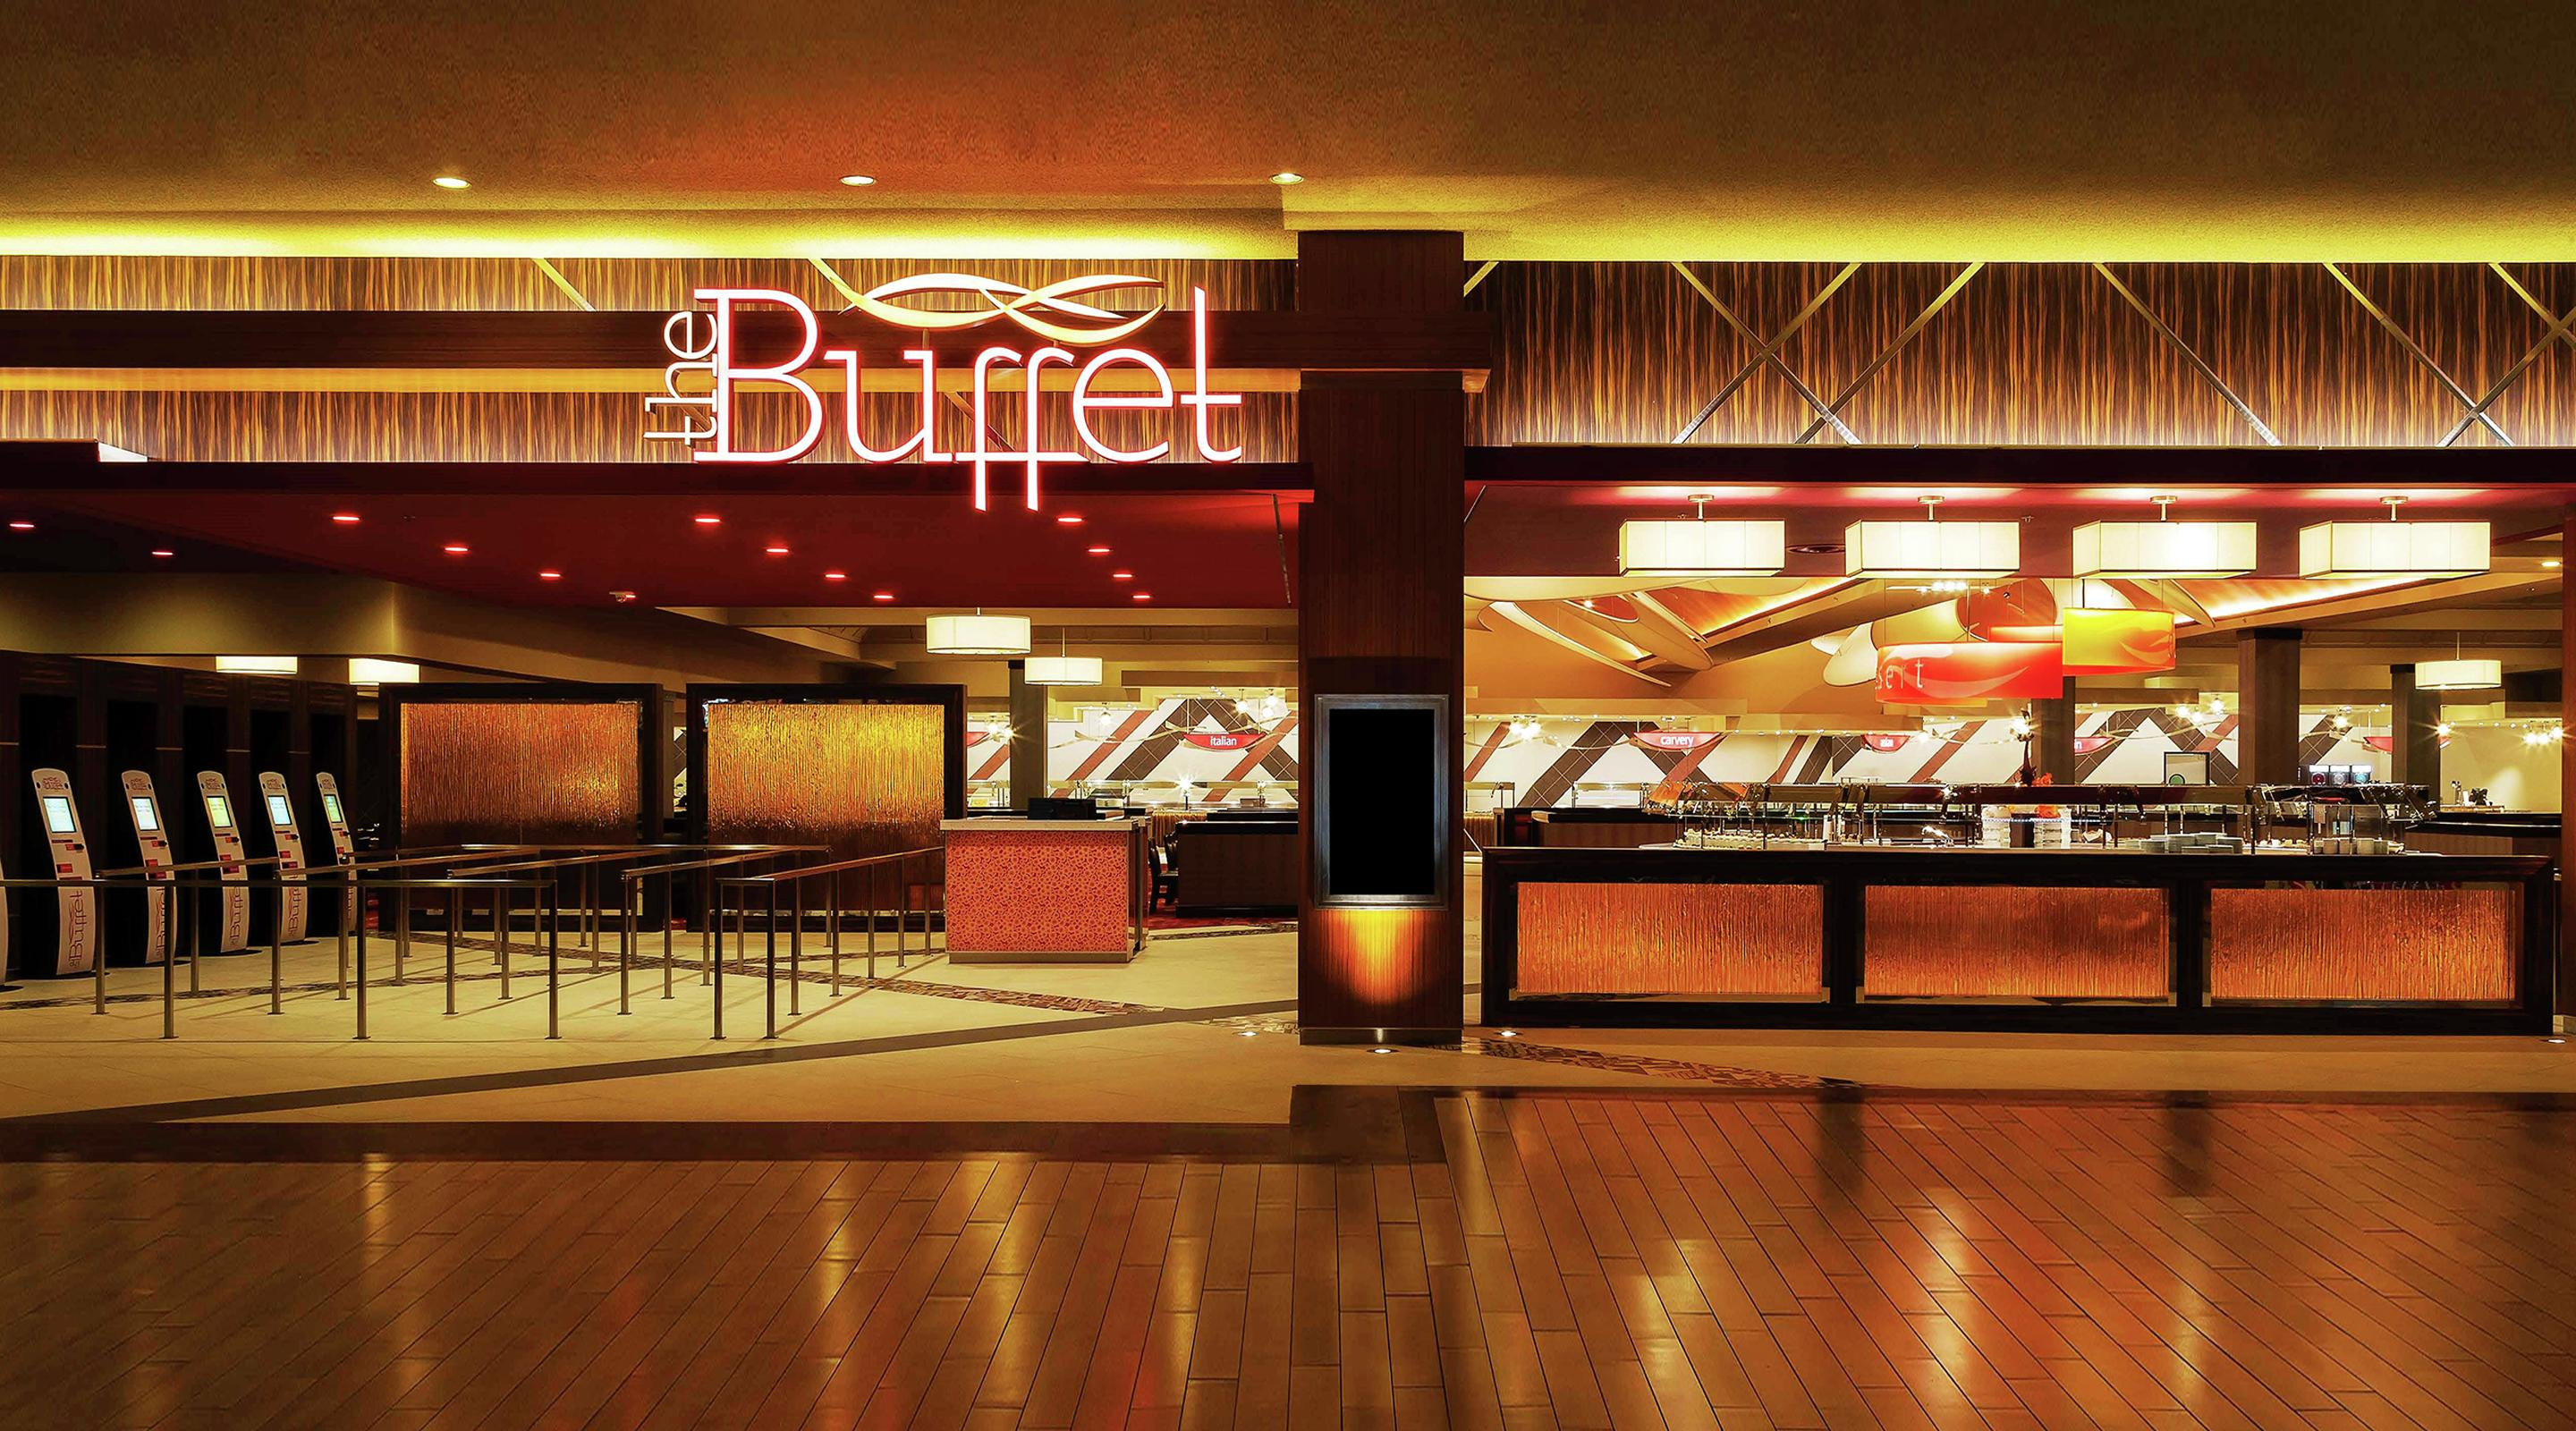 las vegas casino buffet prices